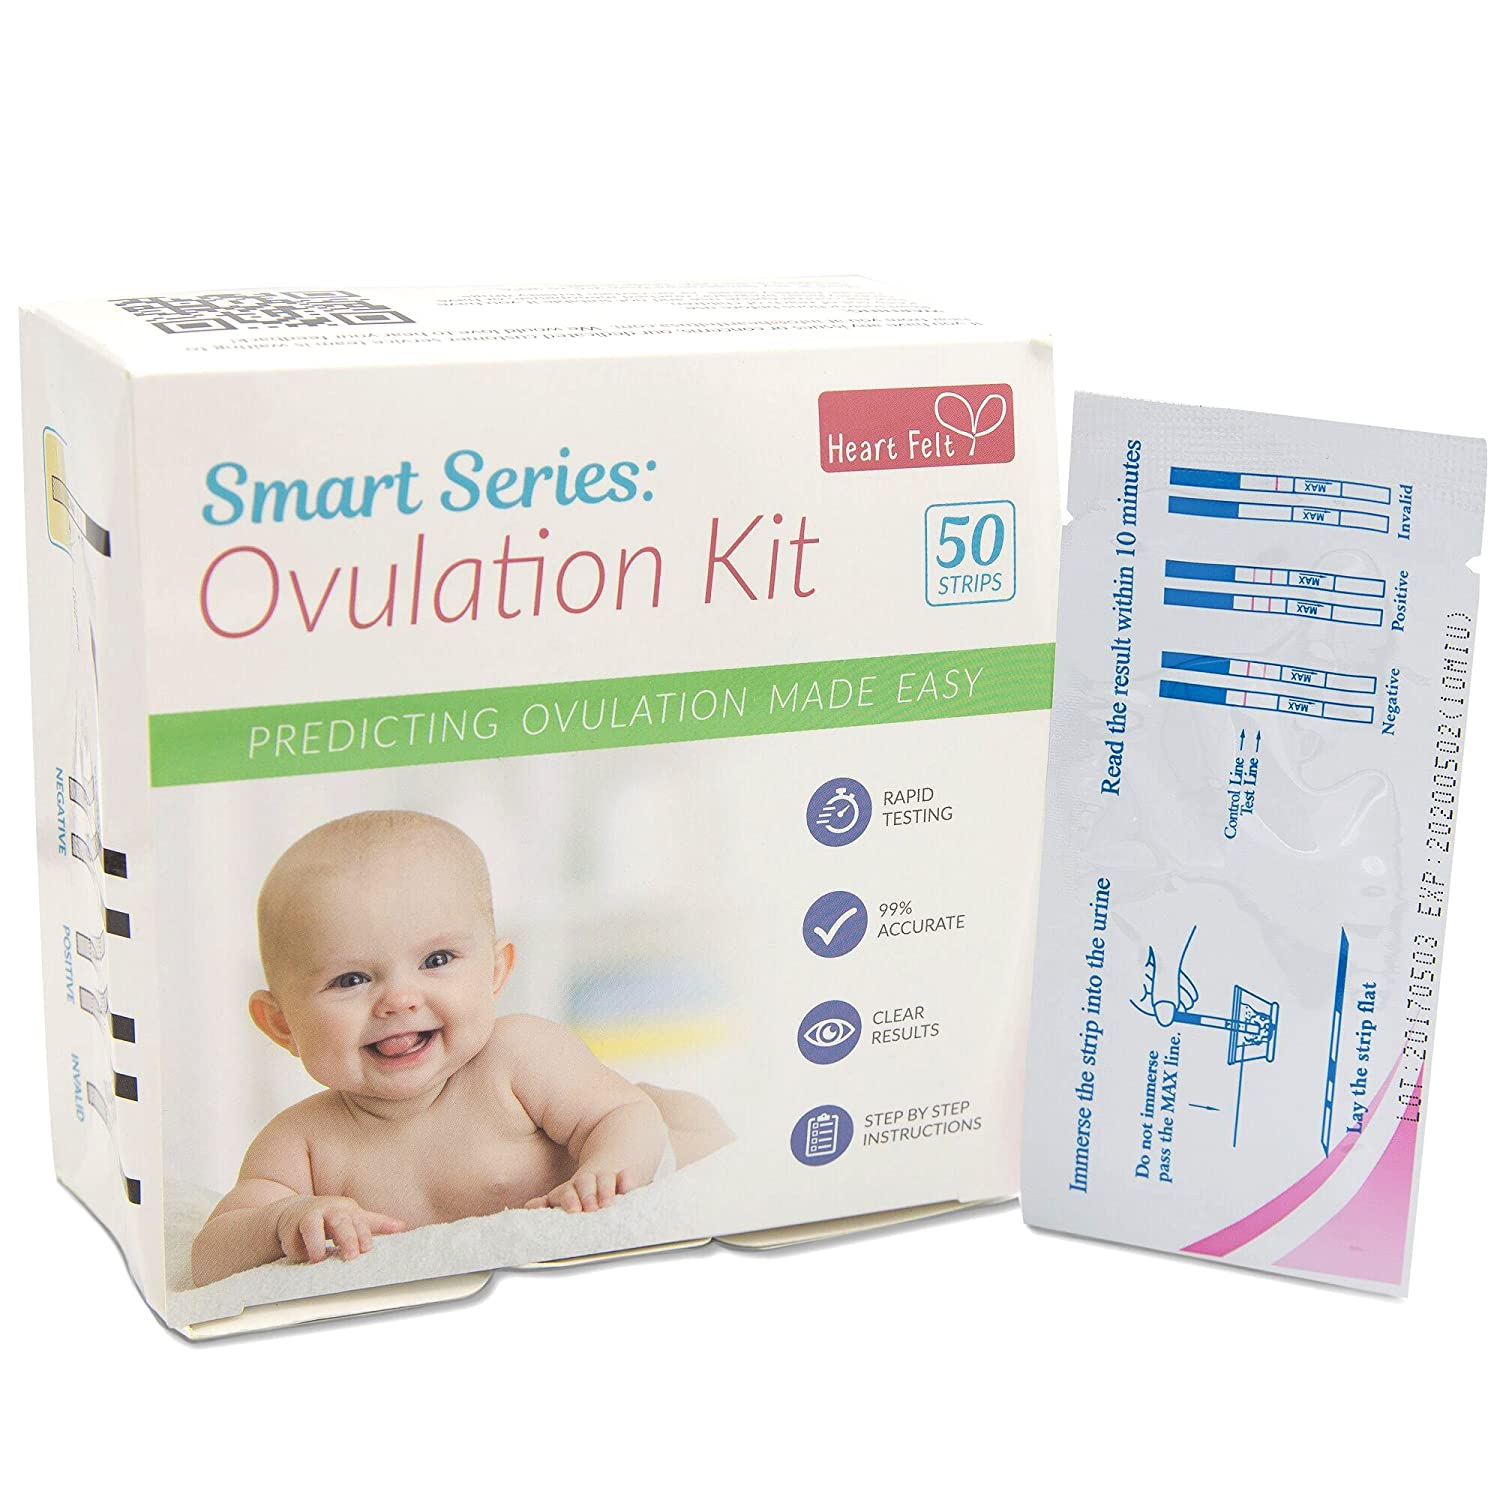 Ovulation Test Strips Kit (50 Bulk Pack, LH Type) Fertility Monitor Aid, Natural Conception Indicator, Easy Home Midstream Predictor Reader Sticks by Smart Series